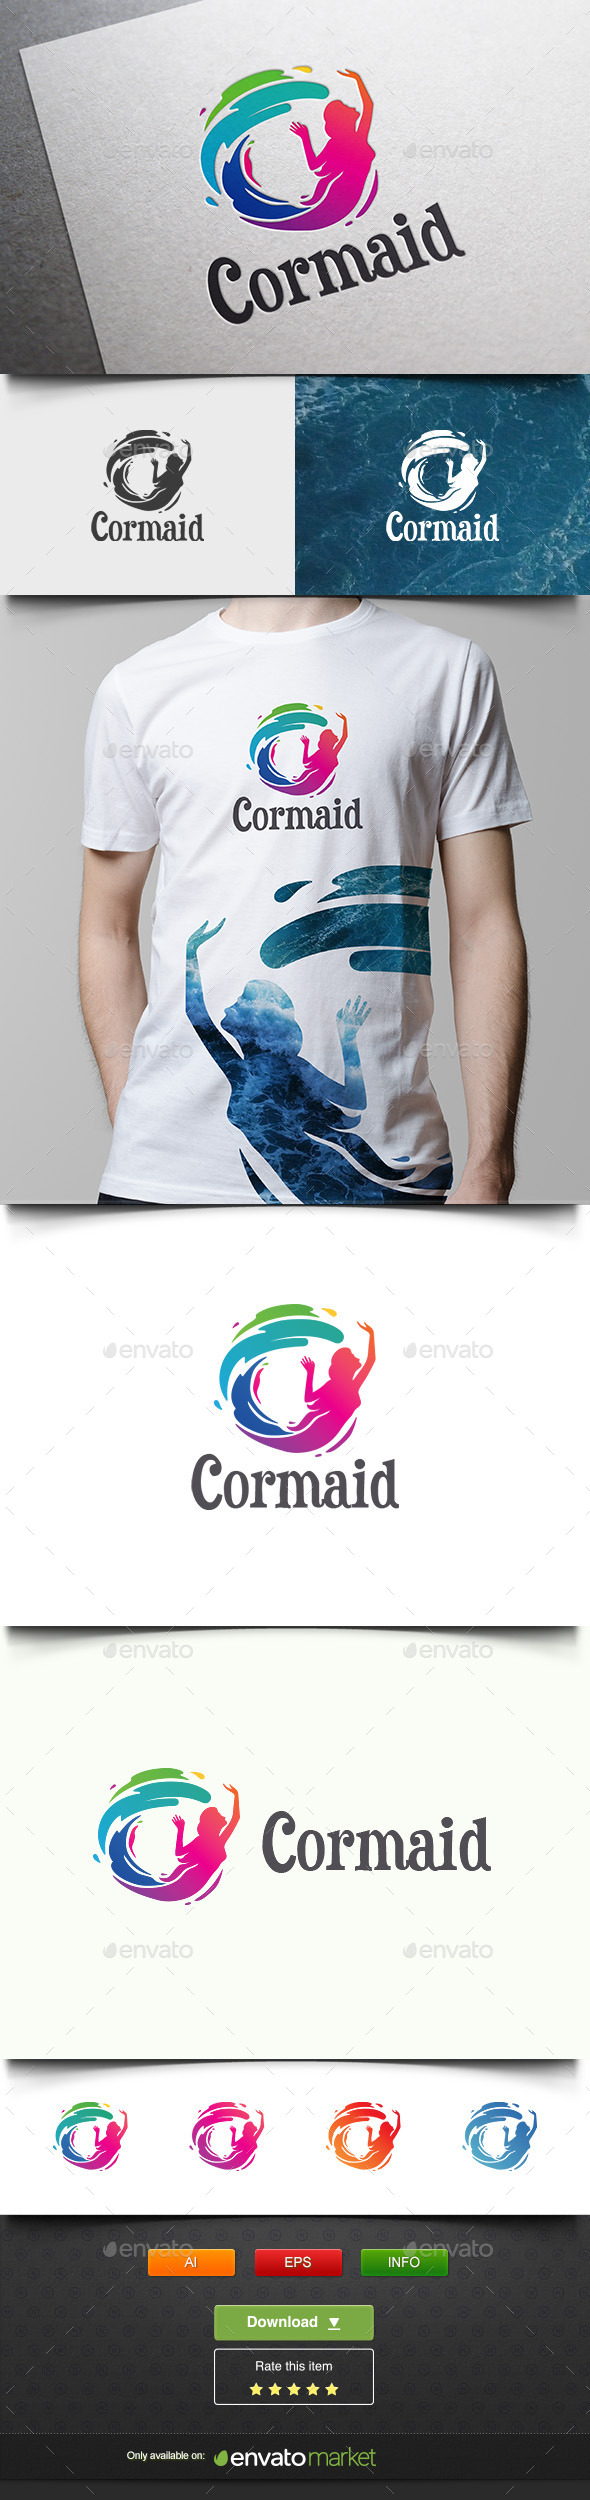 GraphicRiver Cormaid 11785198